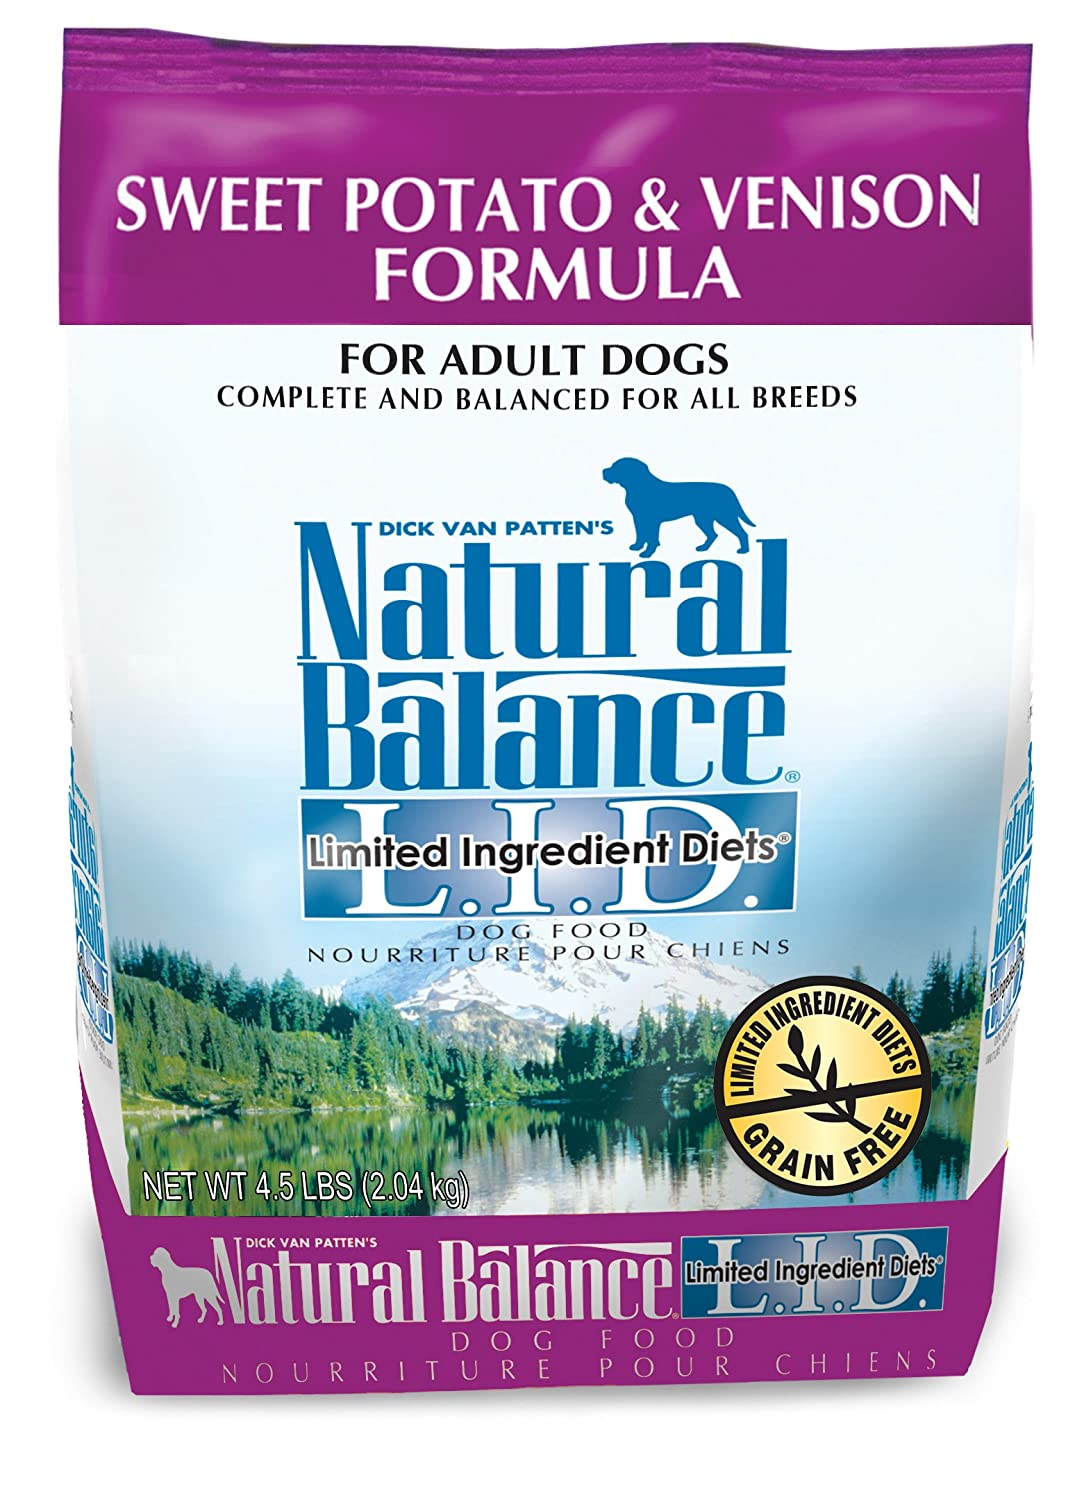 Natural Balance Pet Food Reviews